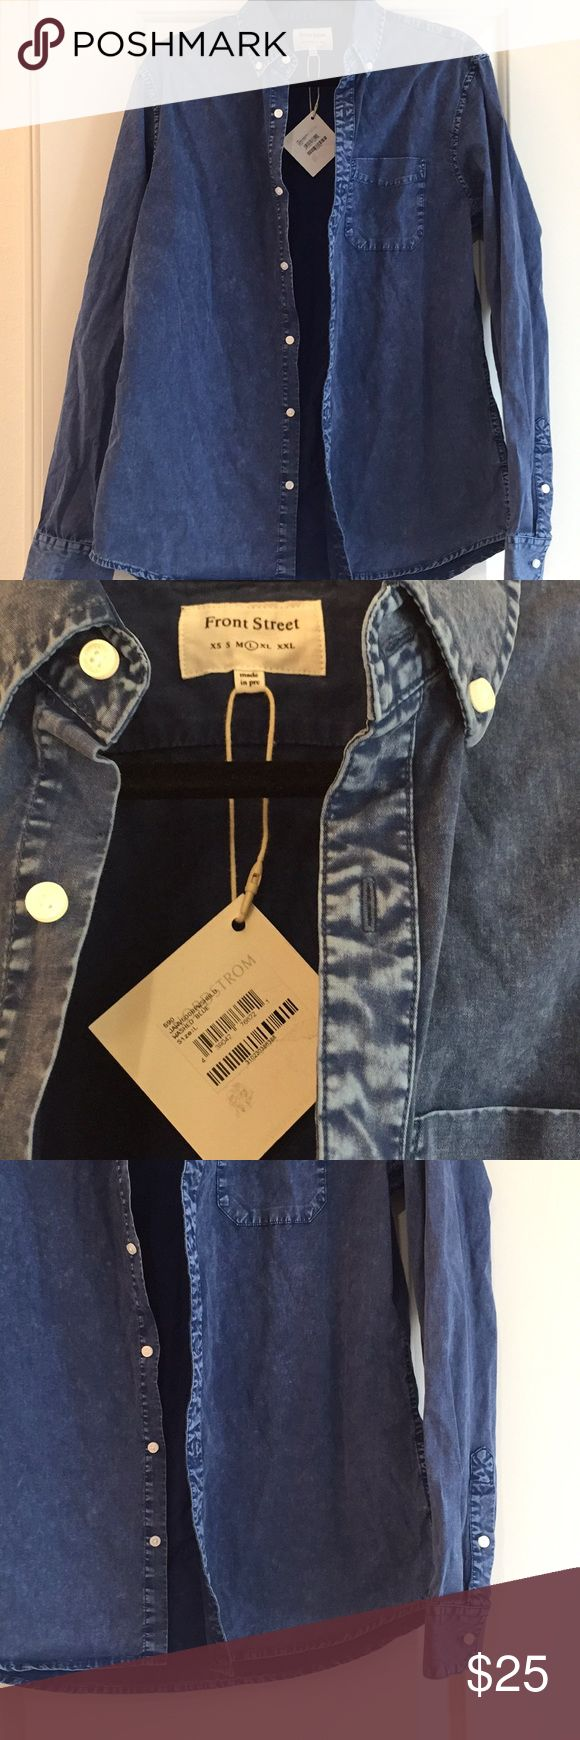 FRONT STREET•Denim long sleeve shirt Button down.  Size L Denim looking shirt NWT Nordstrom tag on it Shirts Casual Button Down Shirts